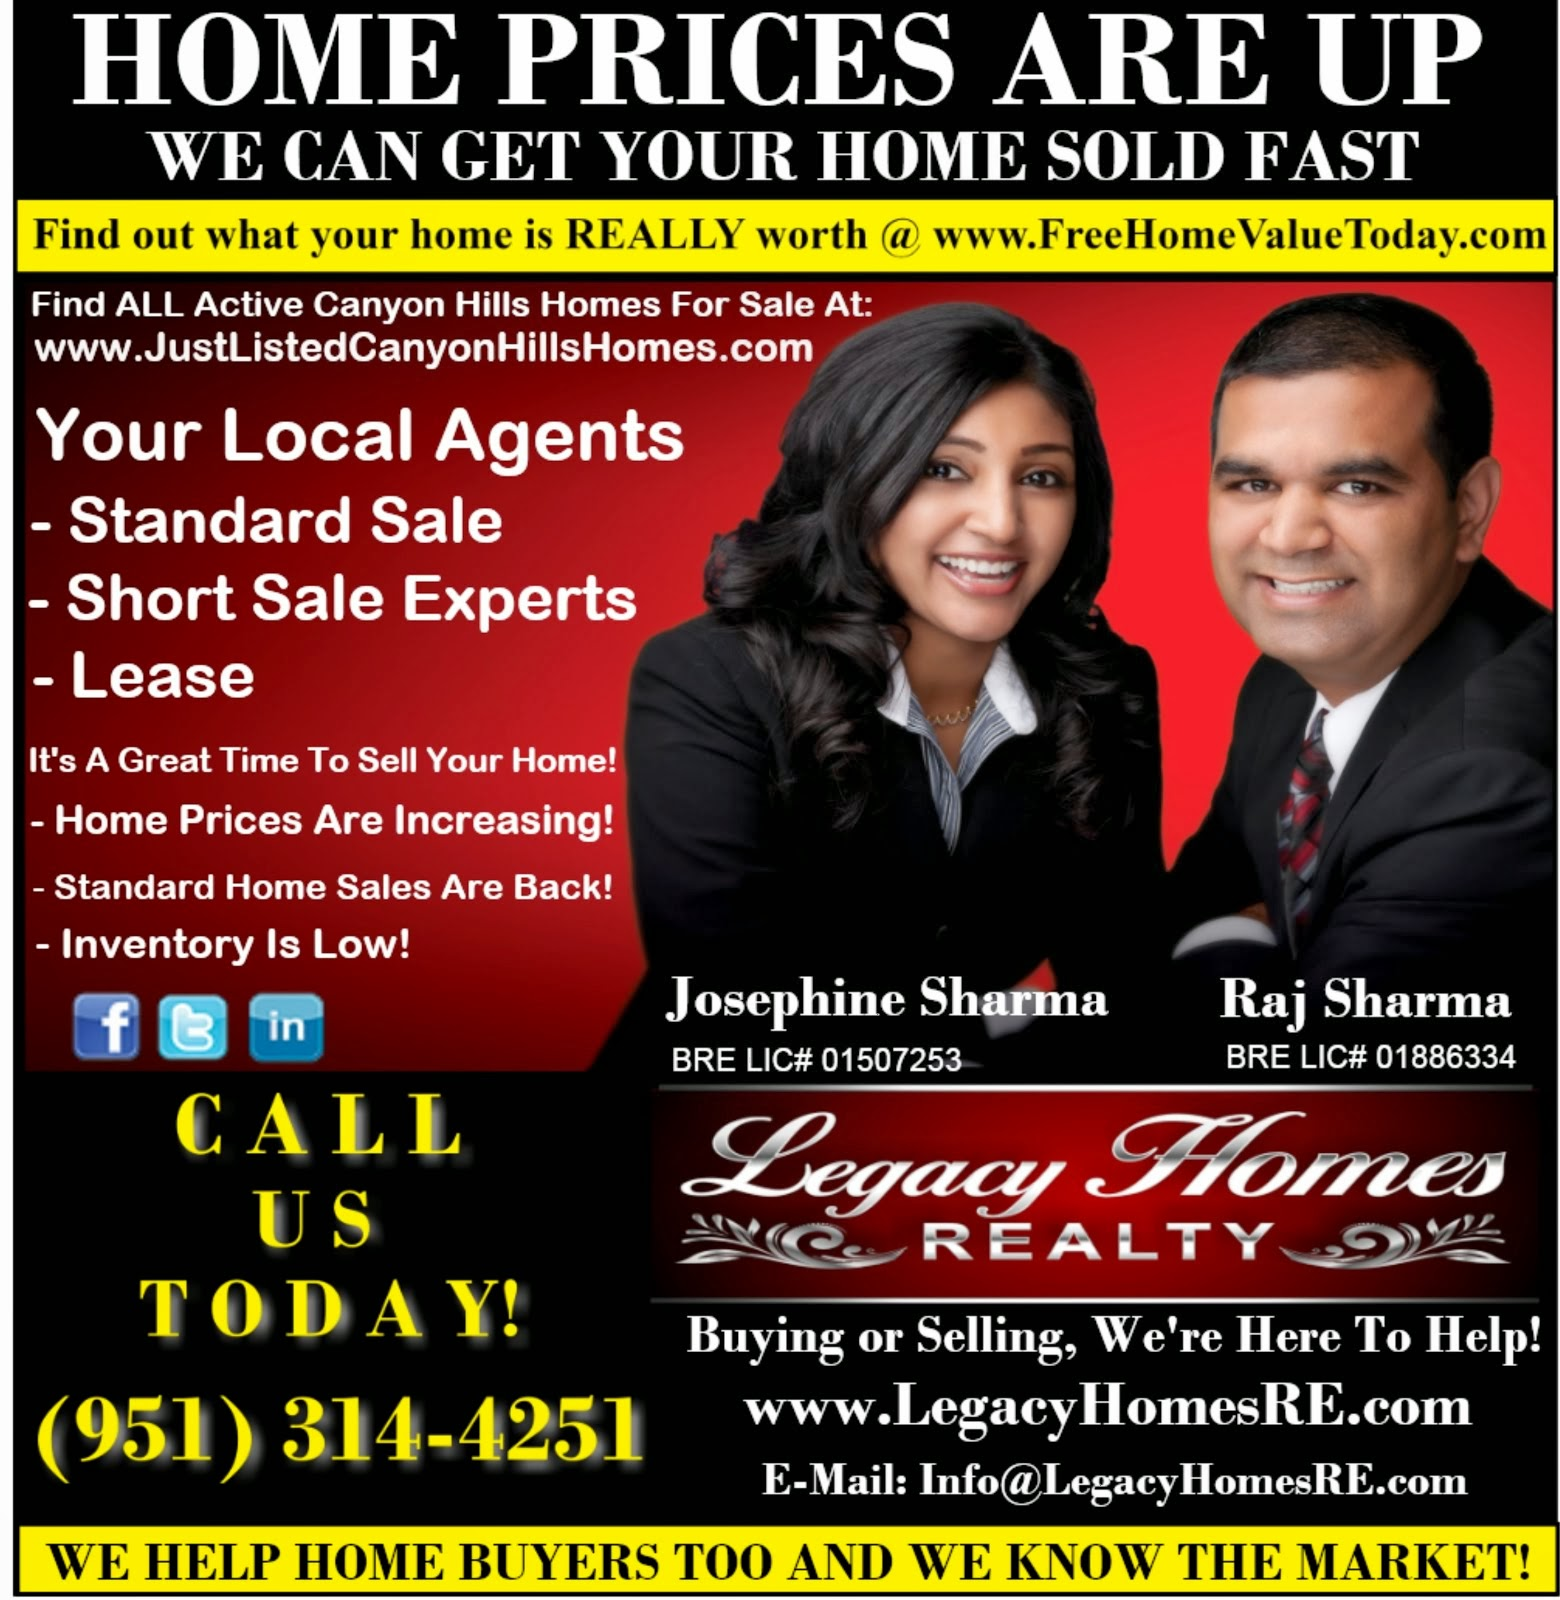 Legacy Homes Realty